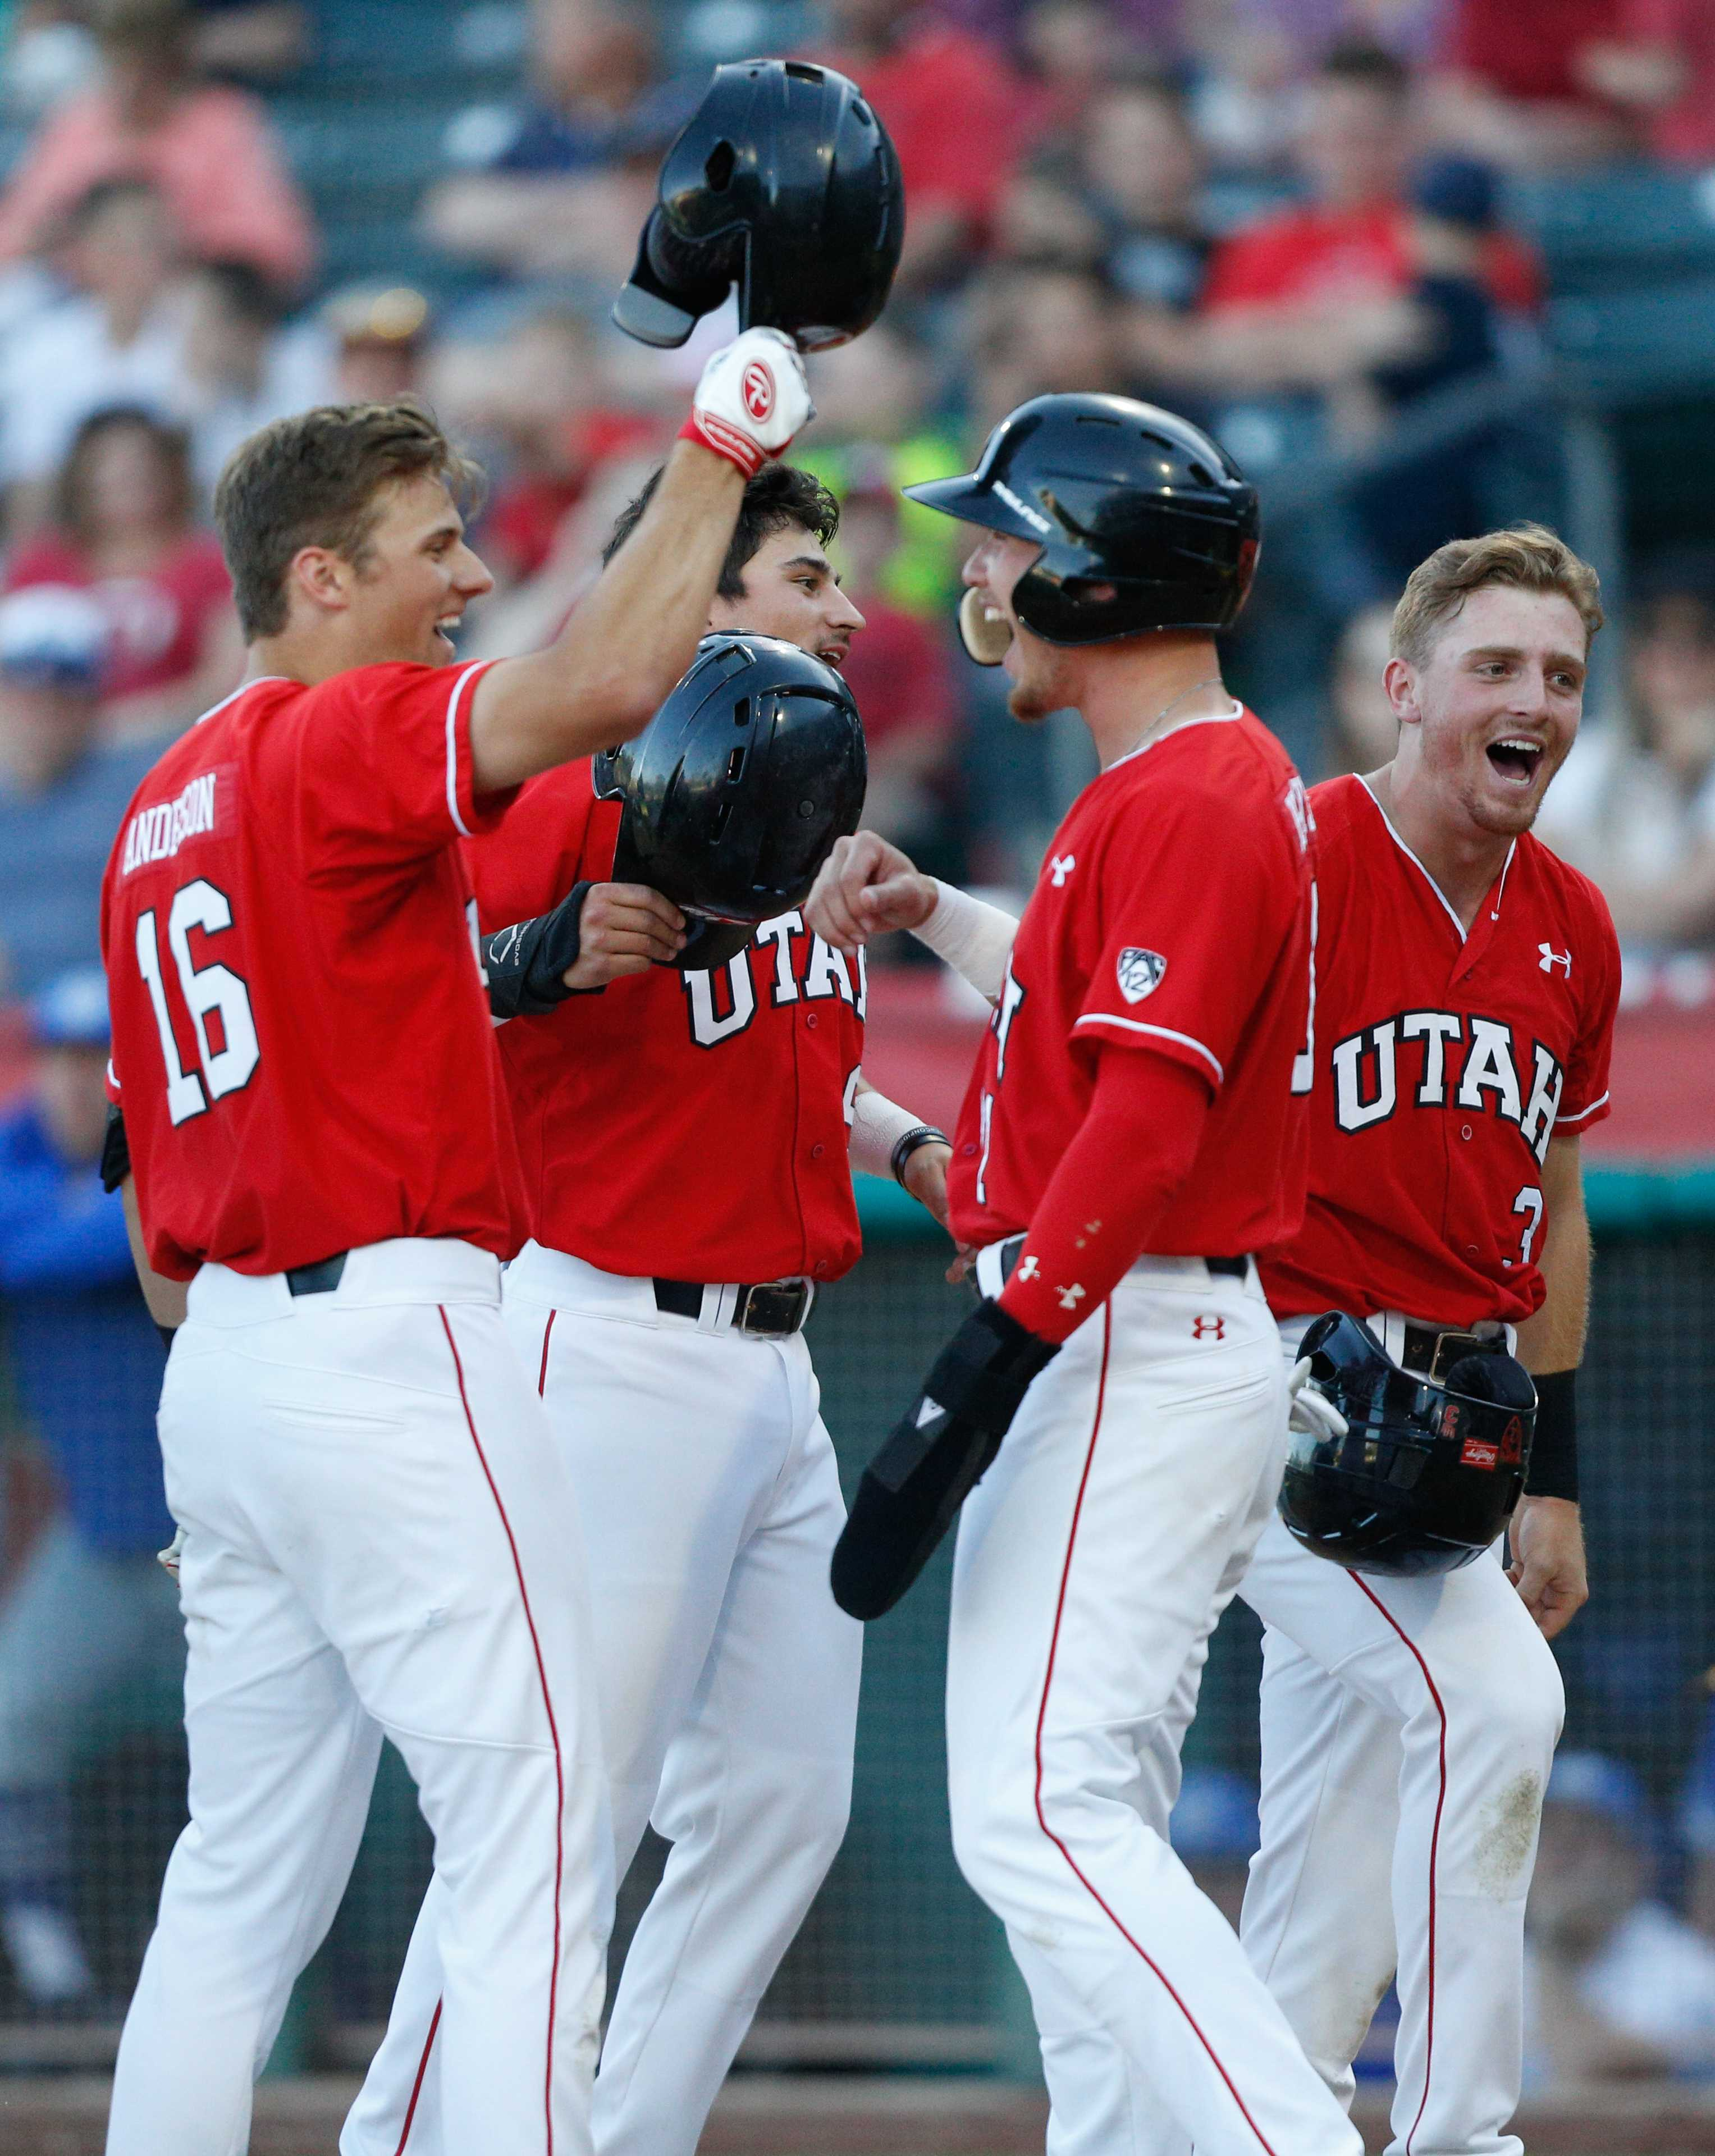 DeShawn Keirsey (9), Oliver Dunn (3) and Ryyker Tom (21) celebrate at home plate with Chandler Anderson (16) after Anderson hit a grand slam as theUtes take on the BYU Cougars at Smith's Ballpark May 8, 2018.  (Photo by: Justin Prather / Daily Utah Chronicle).